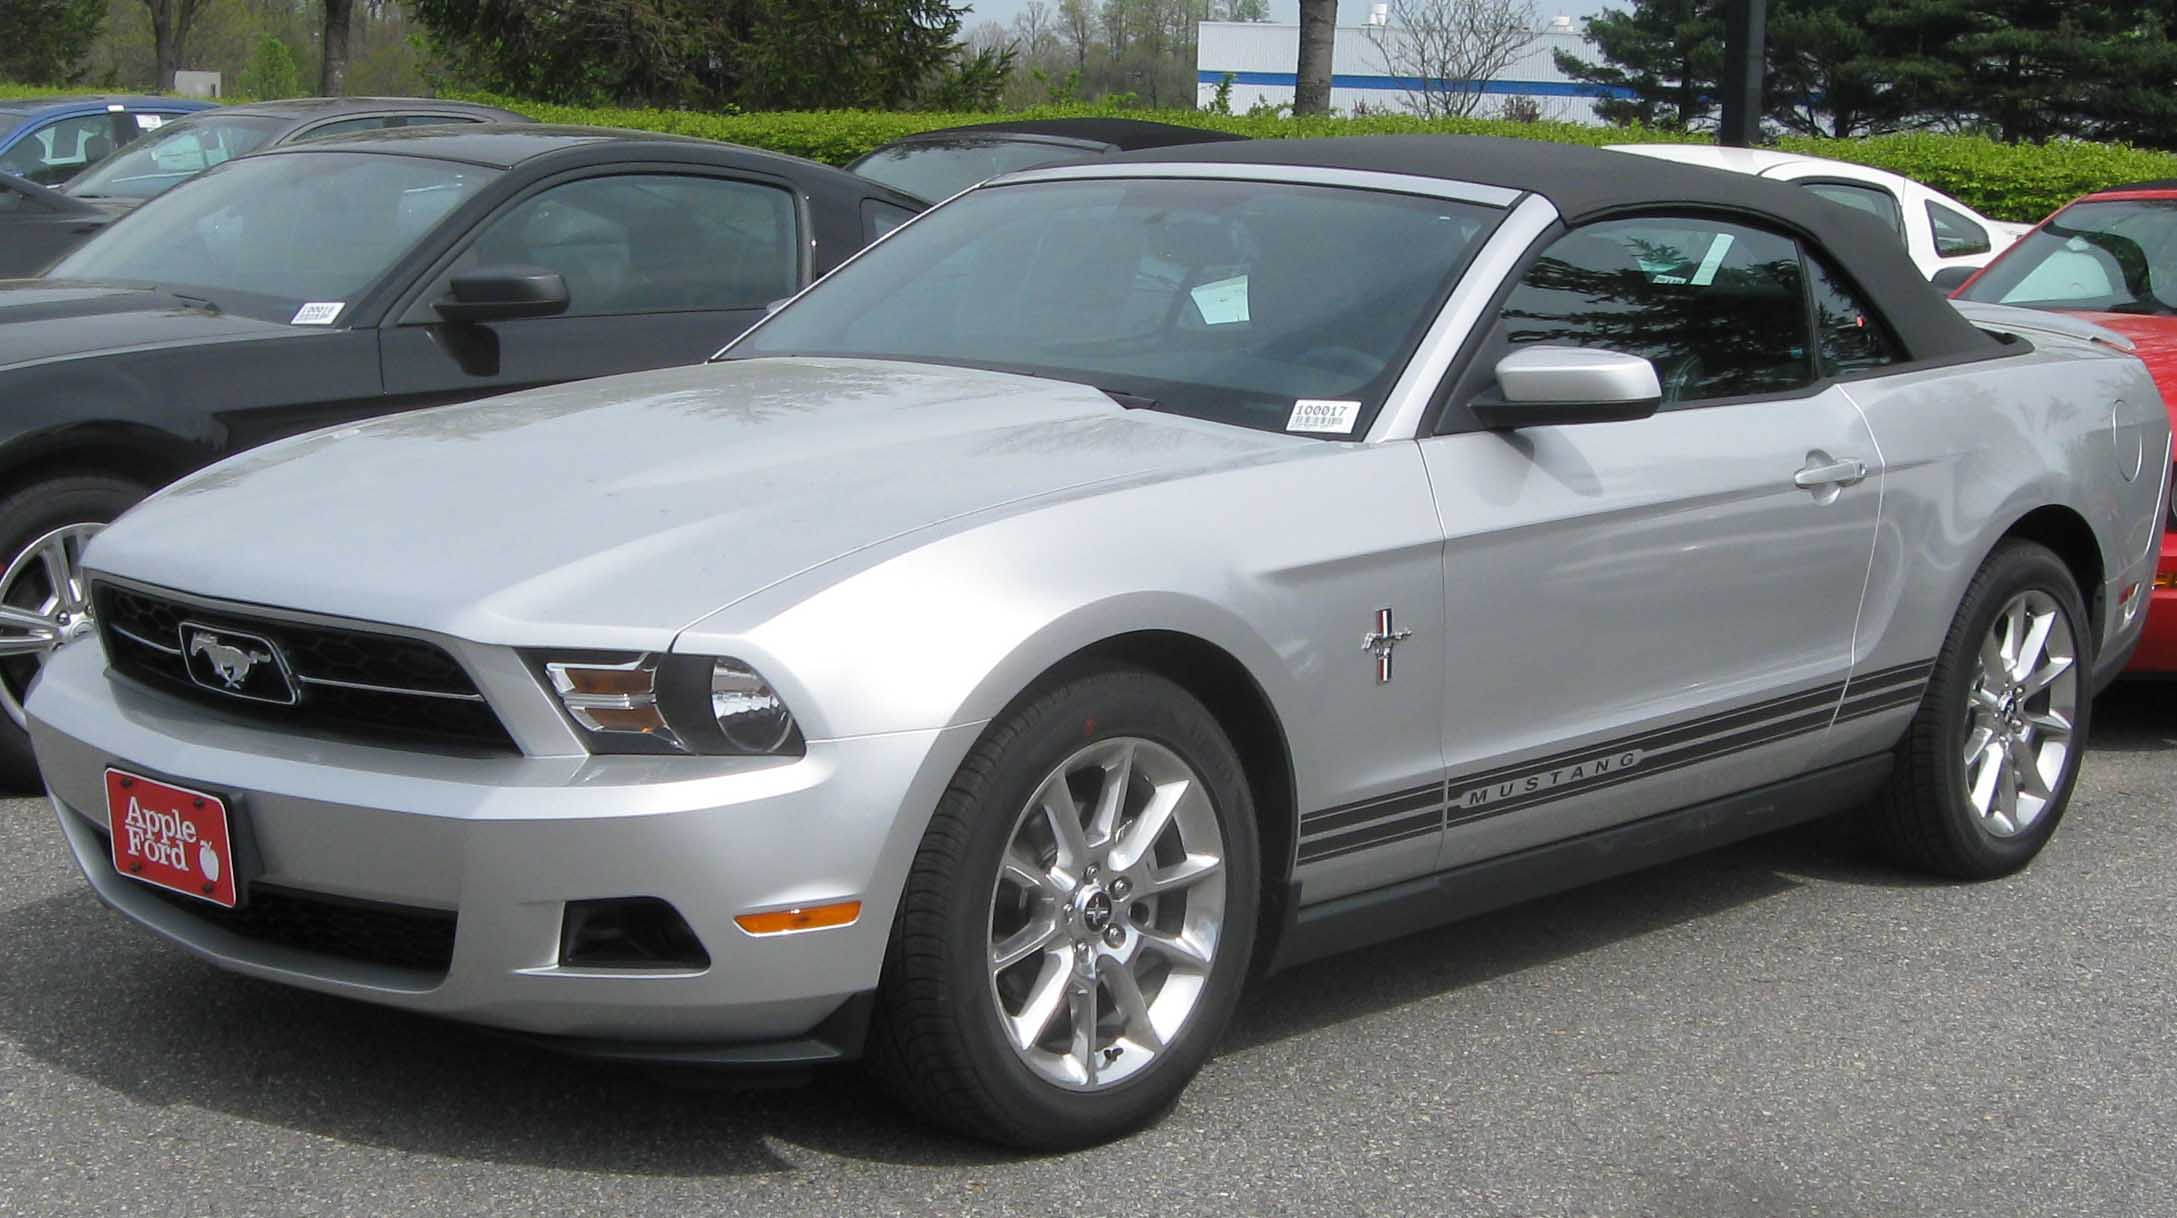 file 2010 ford mustang convertible wikipedia. Black Bedroom Furniture Sets. Home Design Ideas